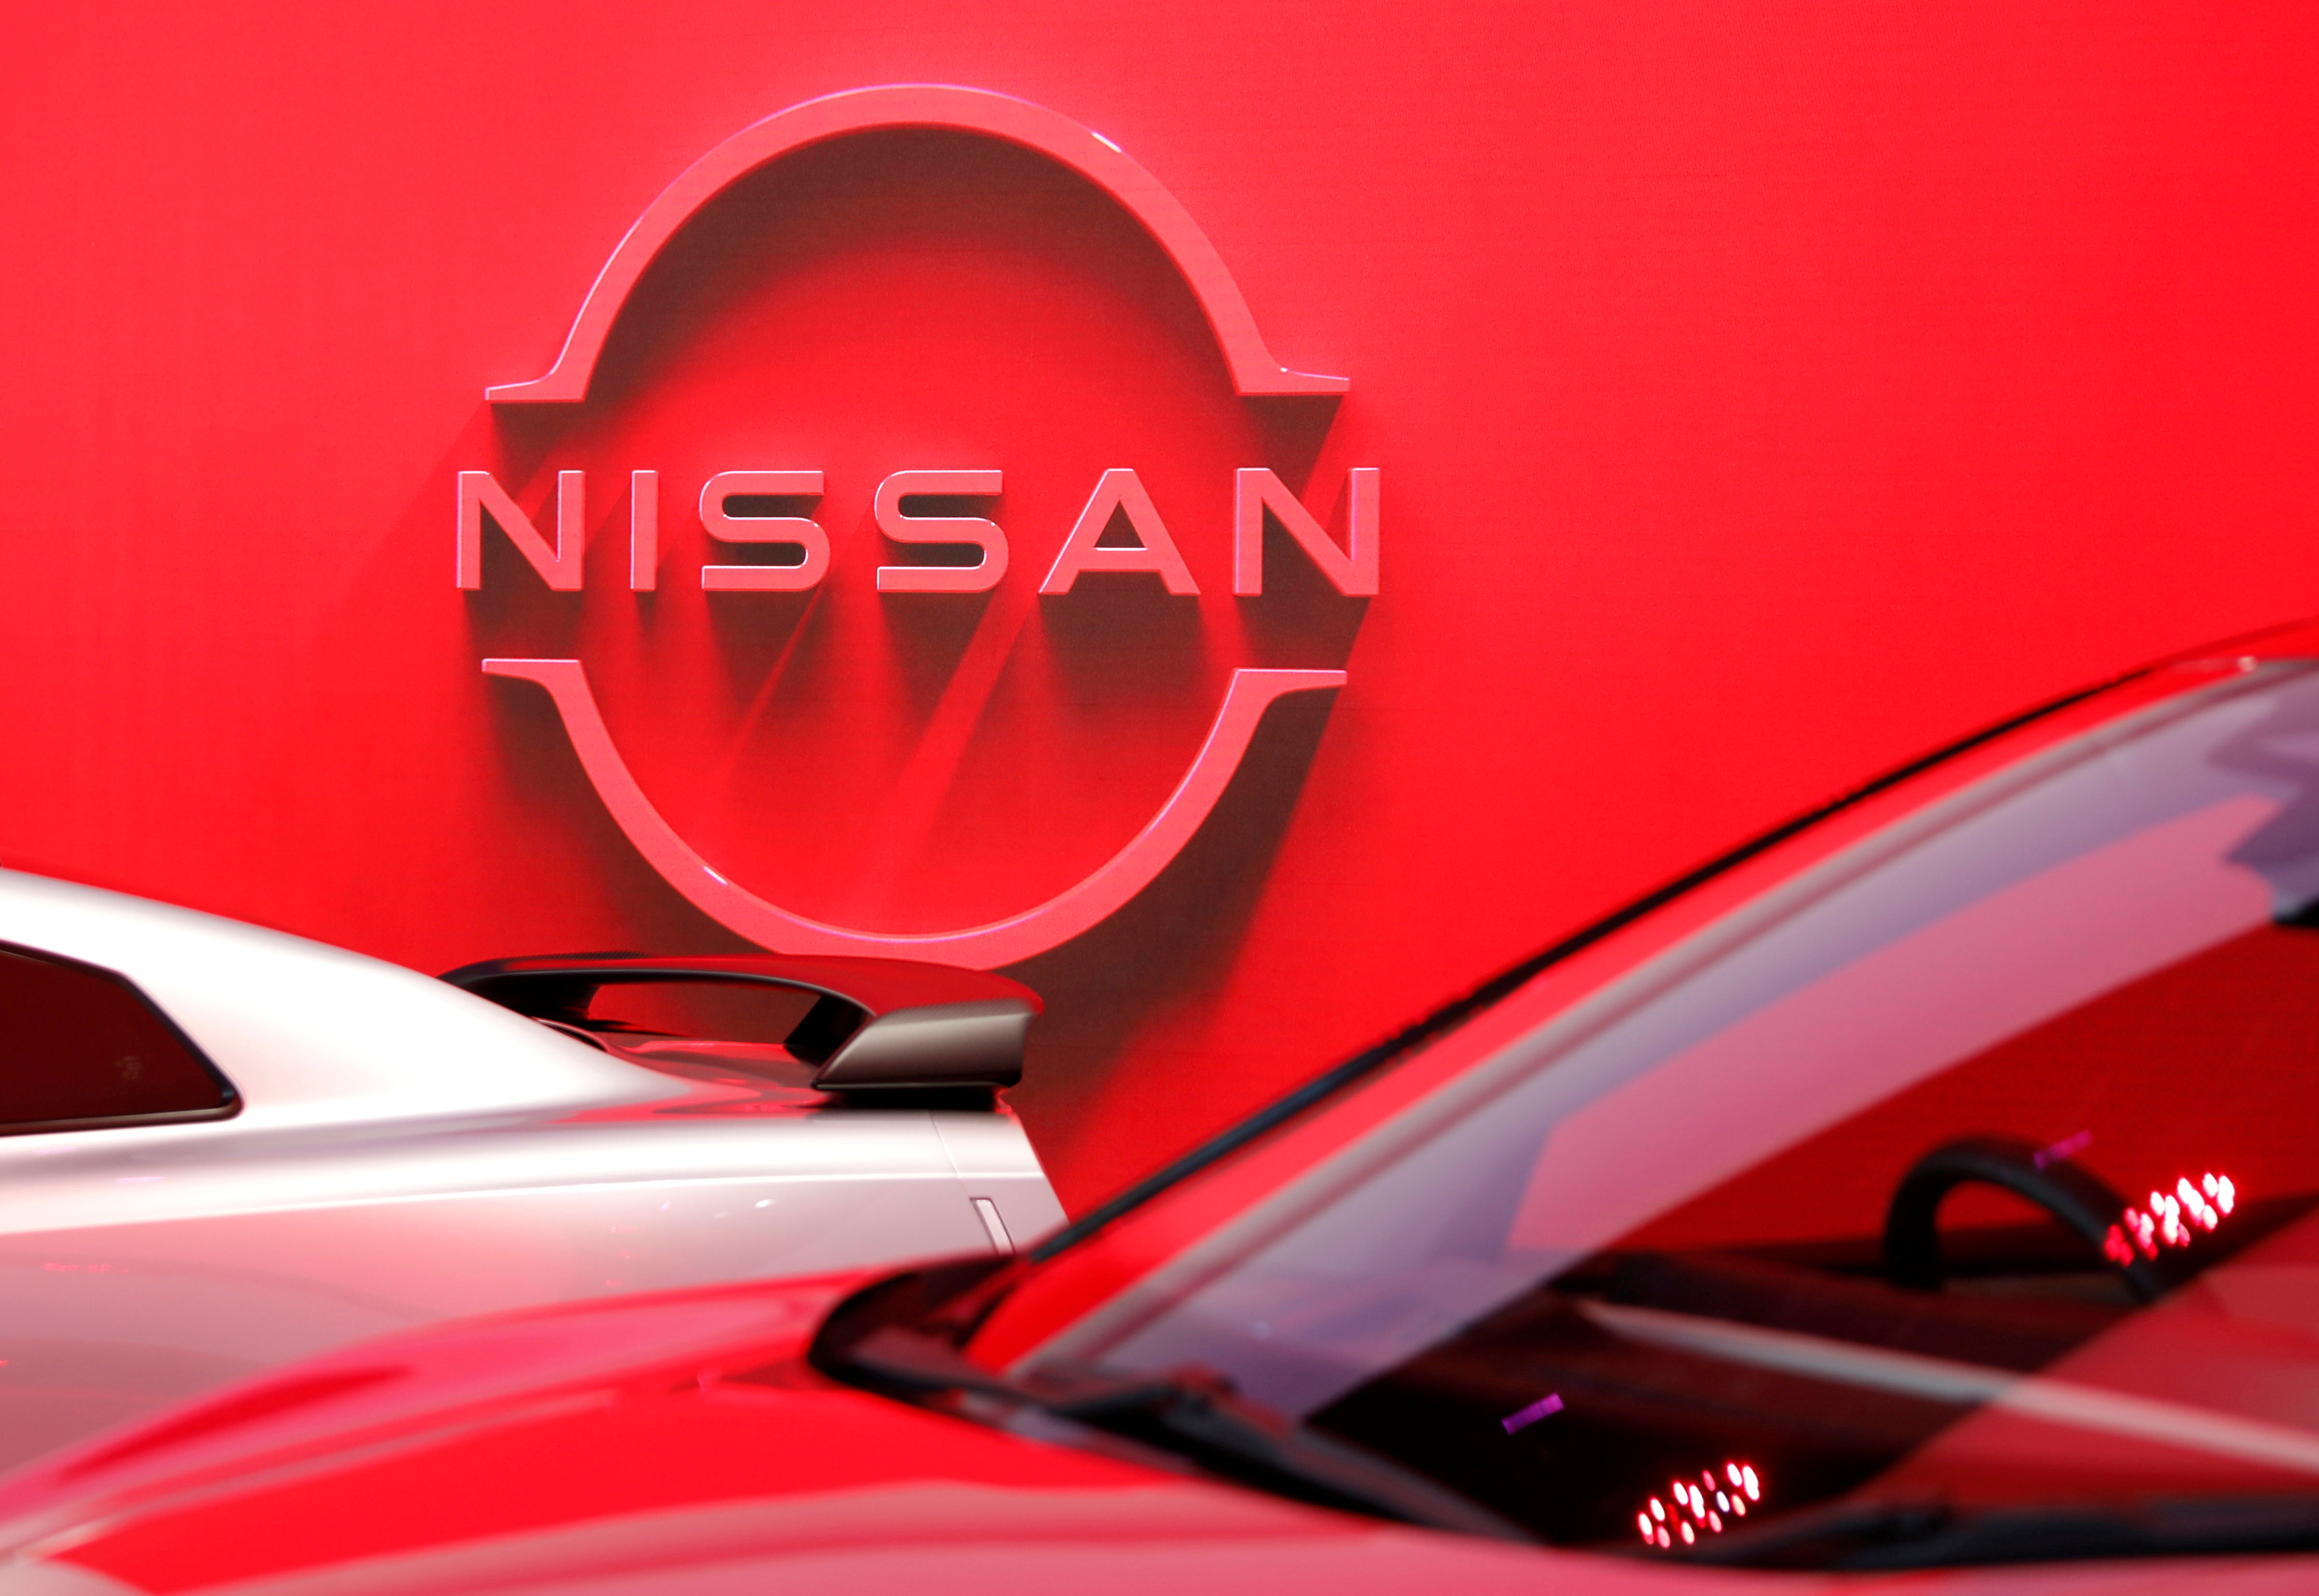 The logo of Nissan Motor Corp. is displayed the company's showroom in Tokyo, Japan November 11, 2020. REUTERS/Issei Kato